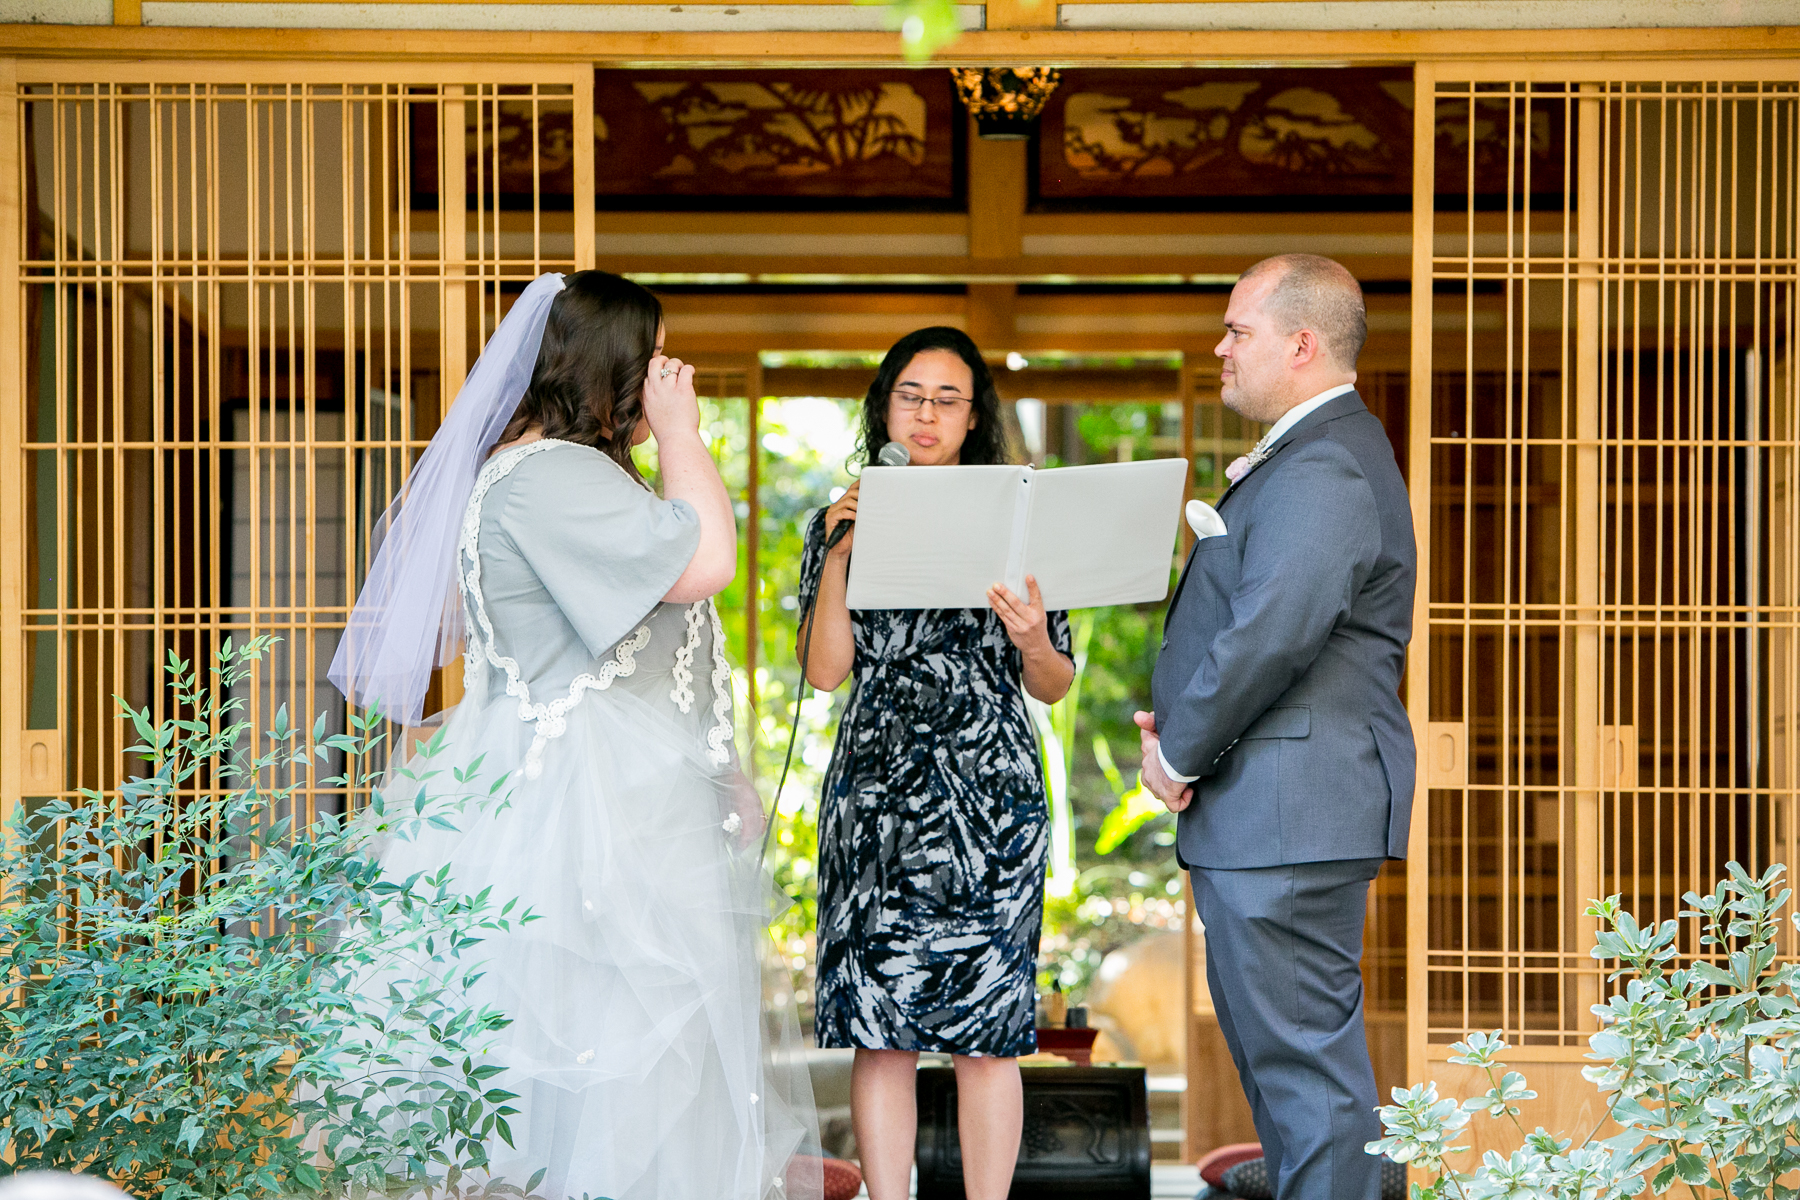 bride wipes tear from eyes during wedding ceremony at storrier stearns photos